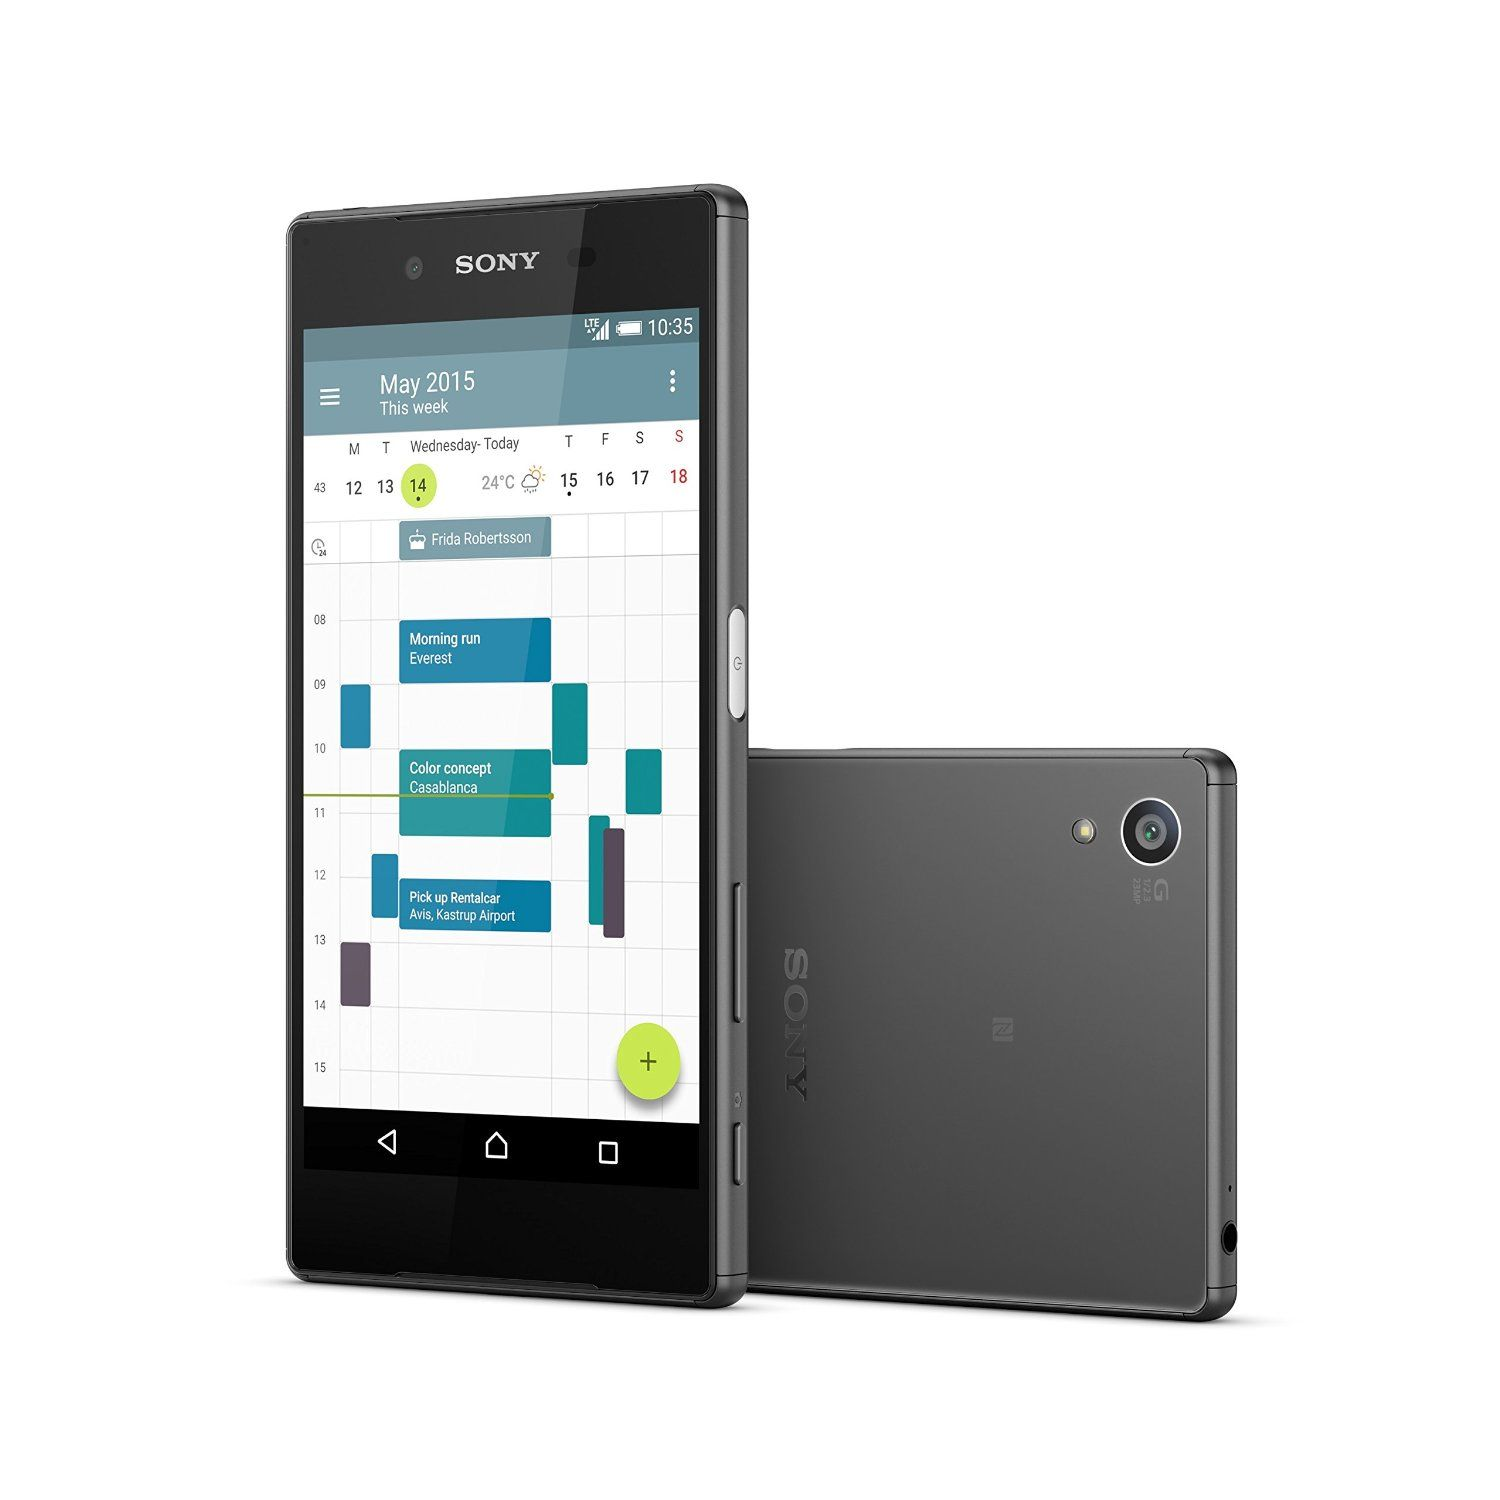 Sony Phone On Amazon Amazon Offer 100 Off On Sony Xperia Z5 32gb Only 499 99